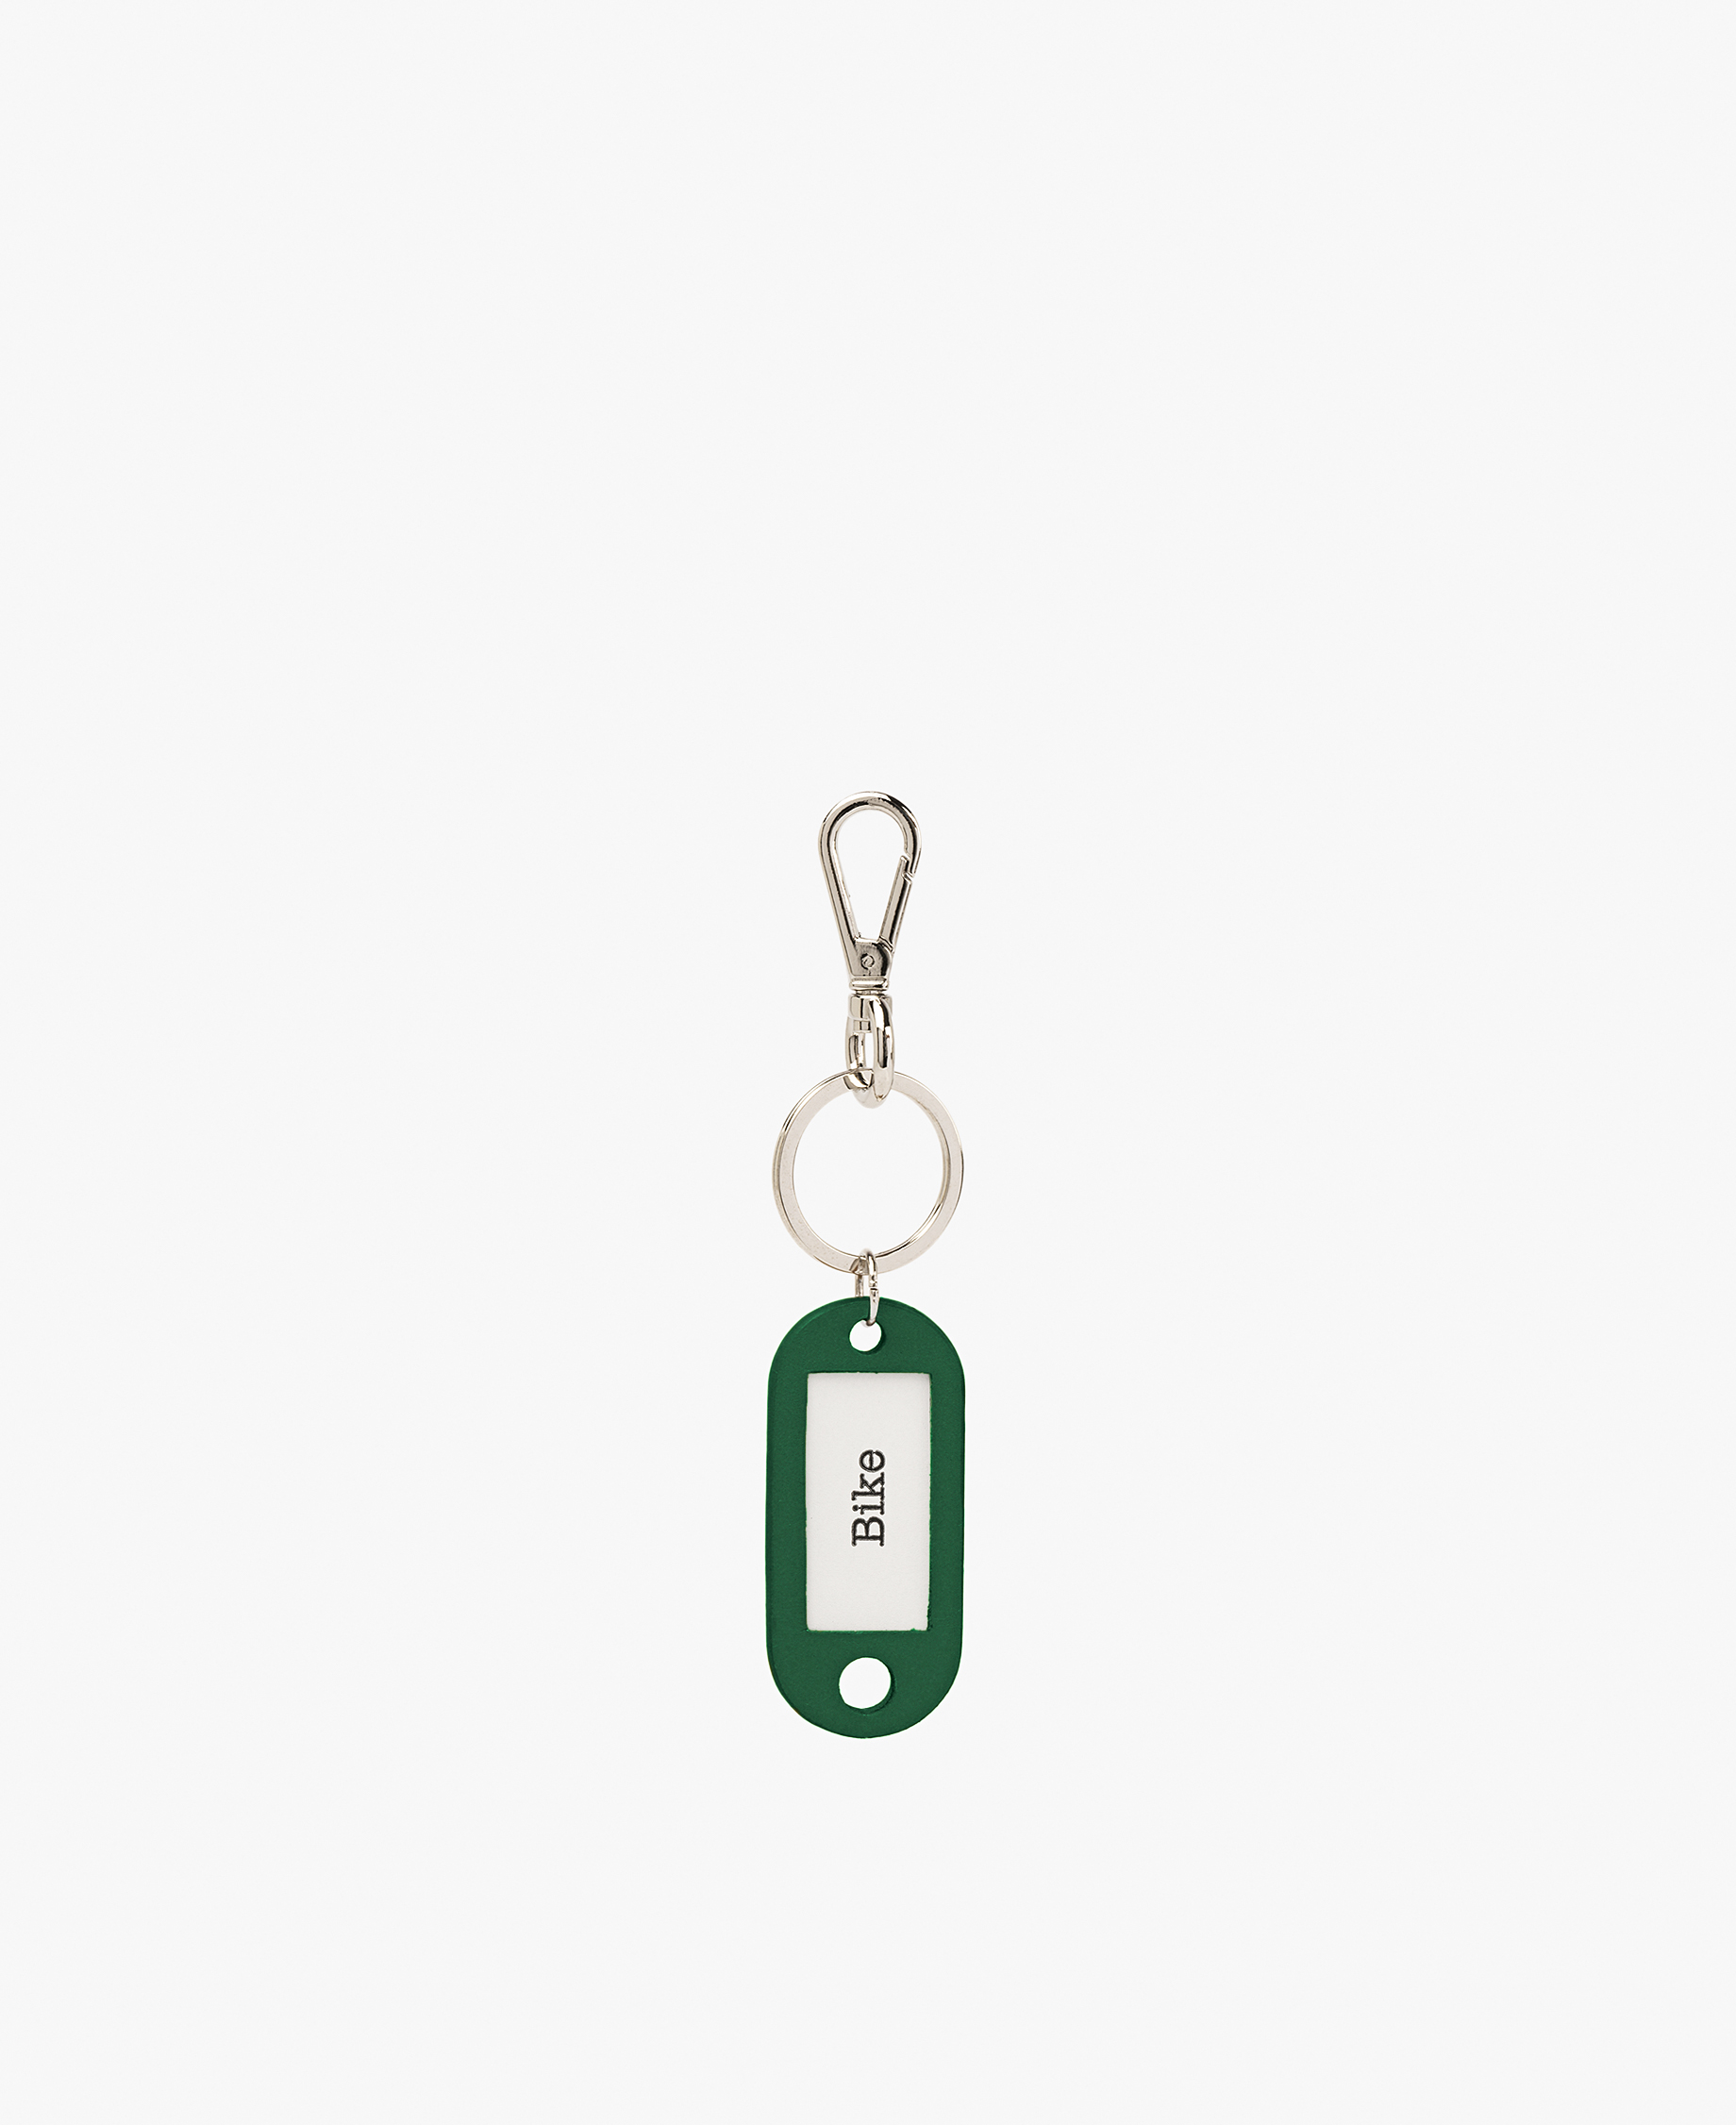 Green key holder